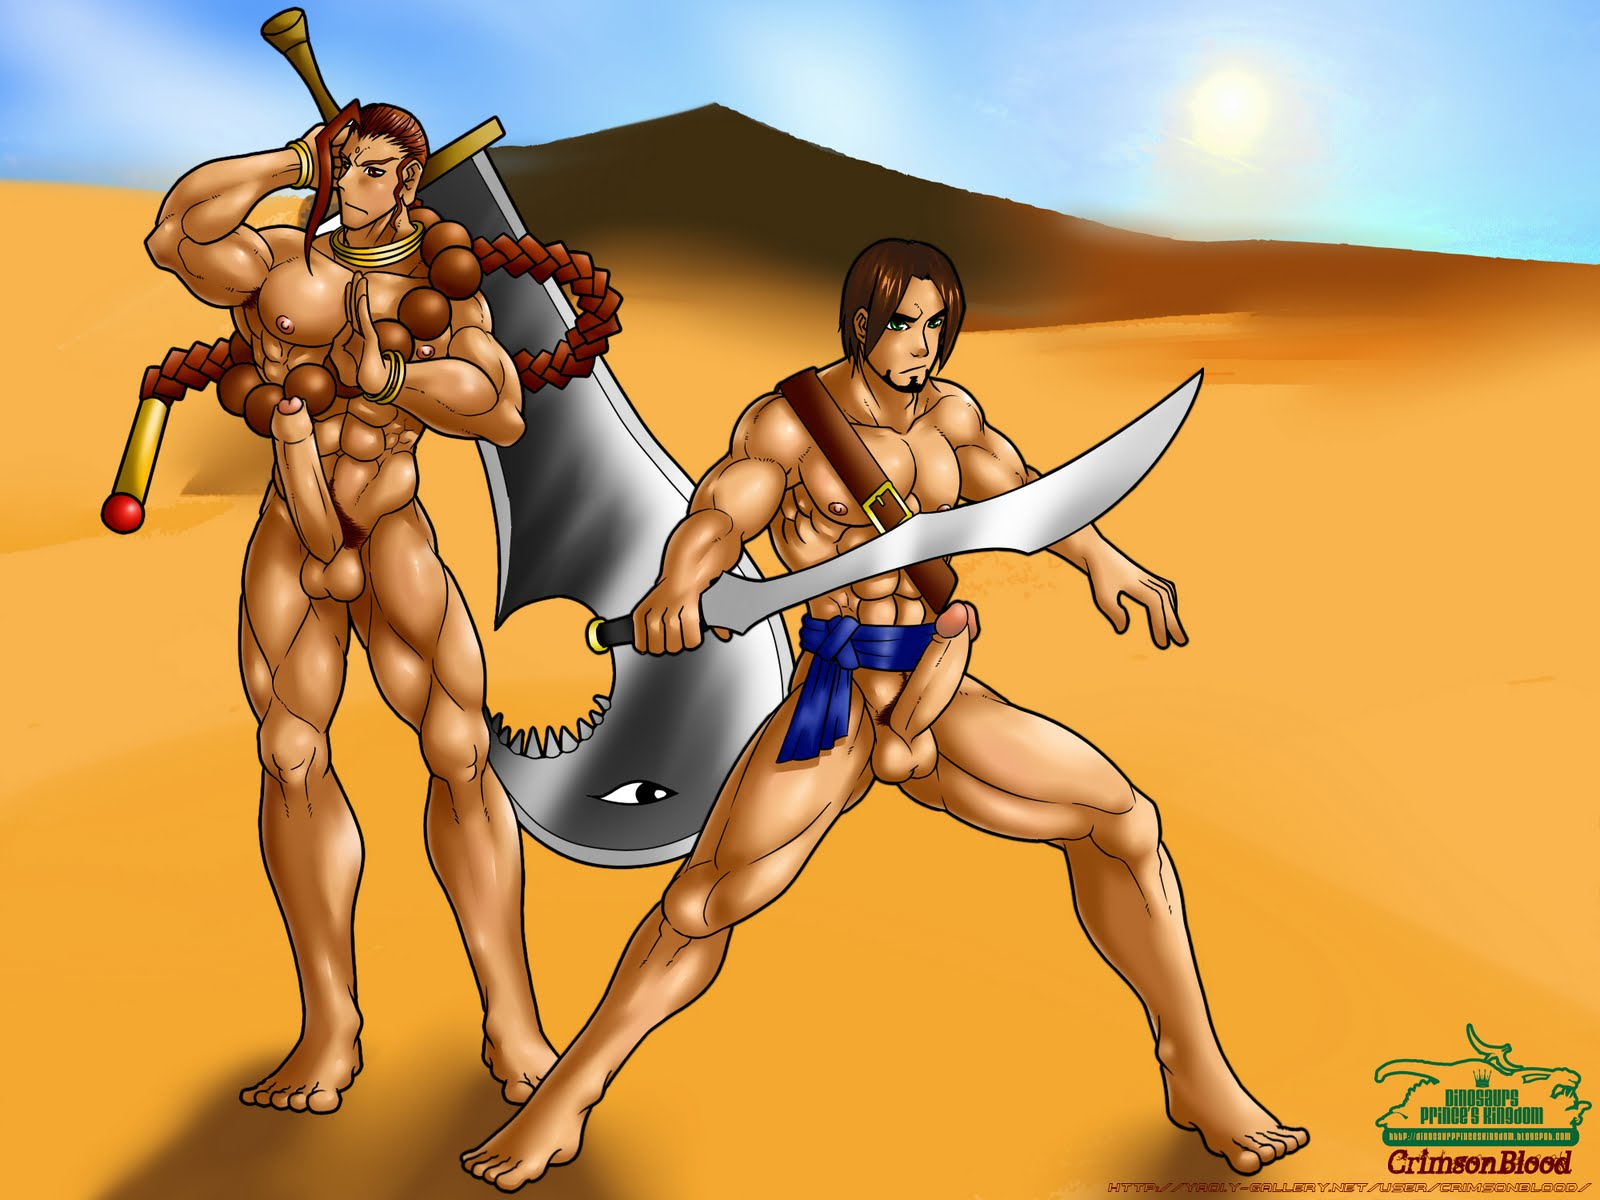 Nude in prince of persia think